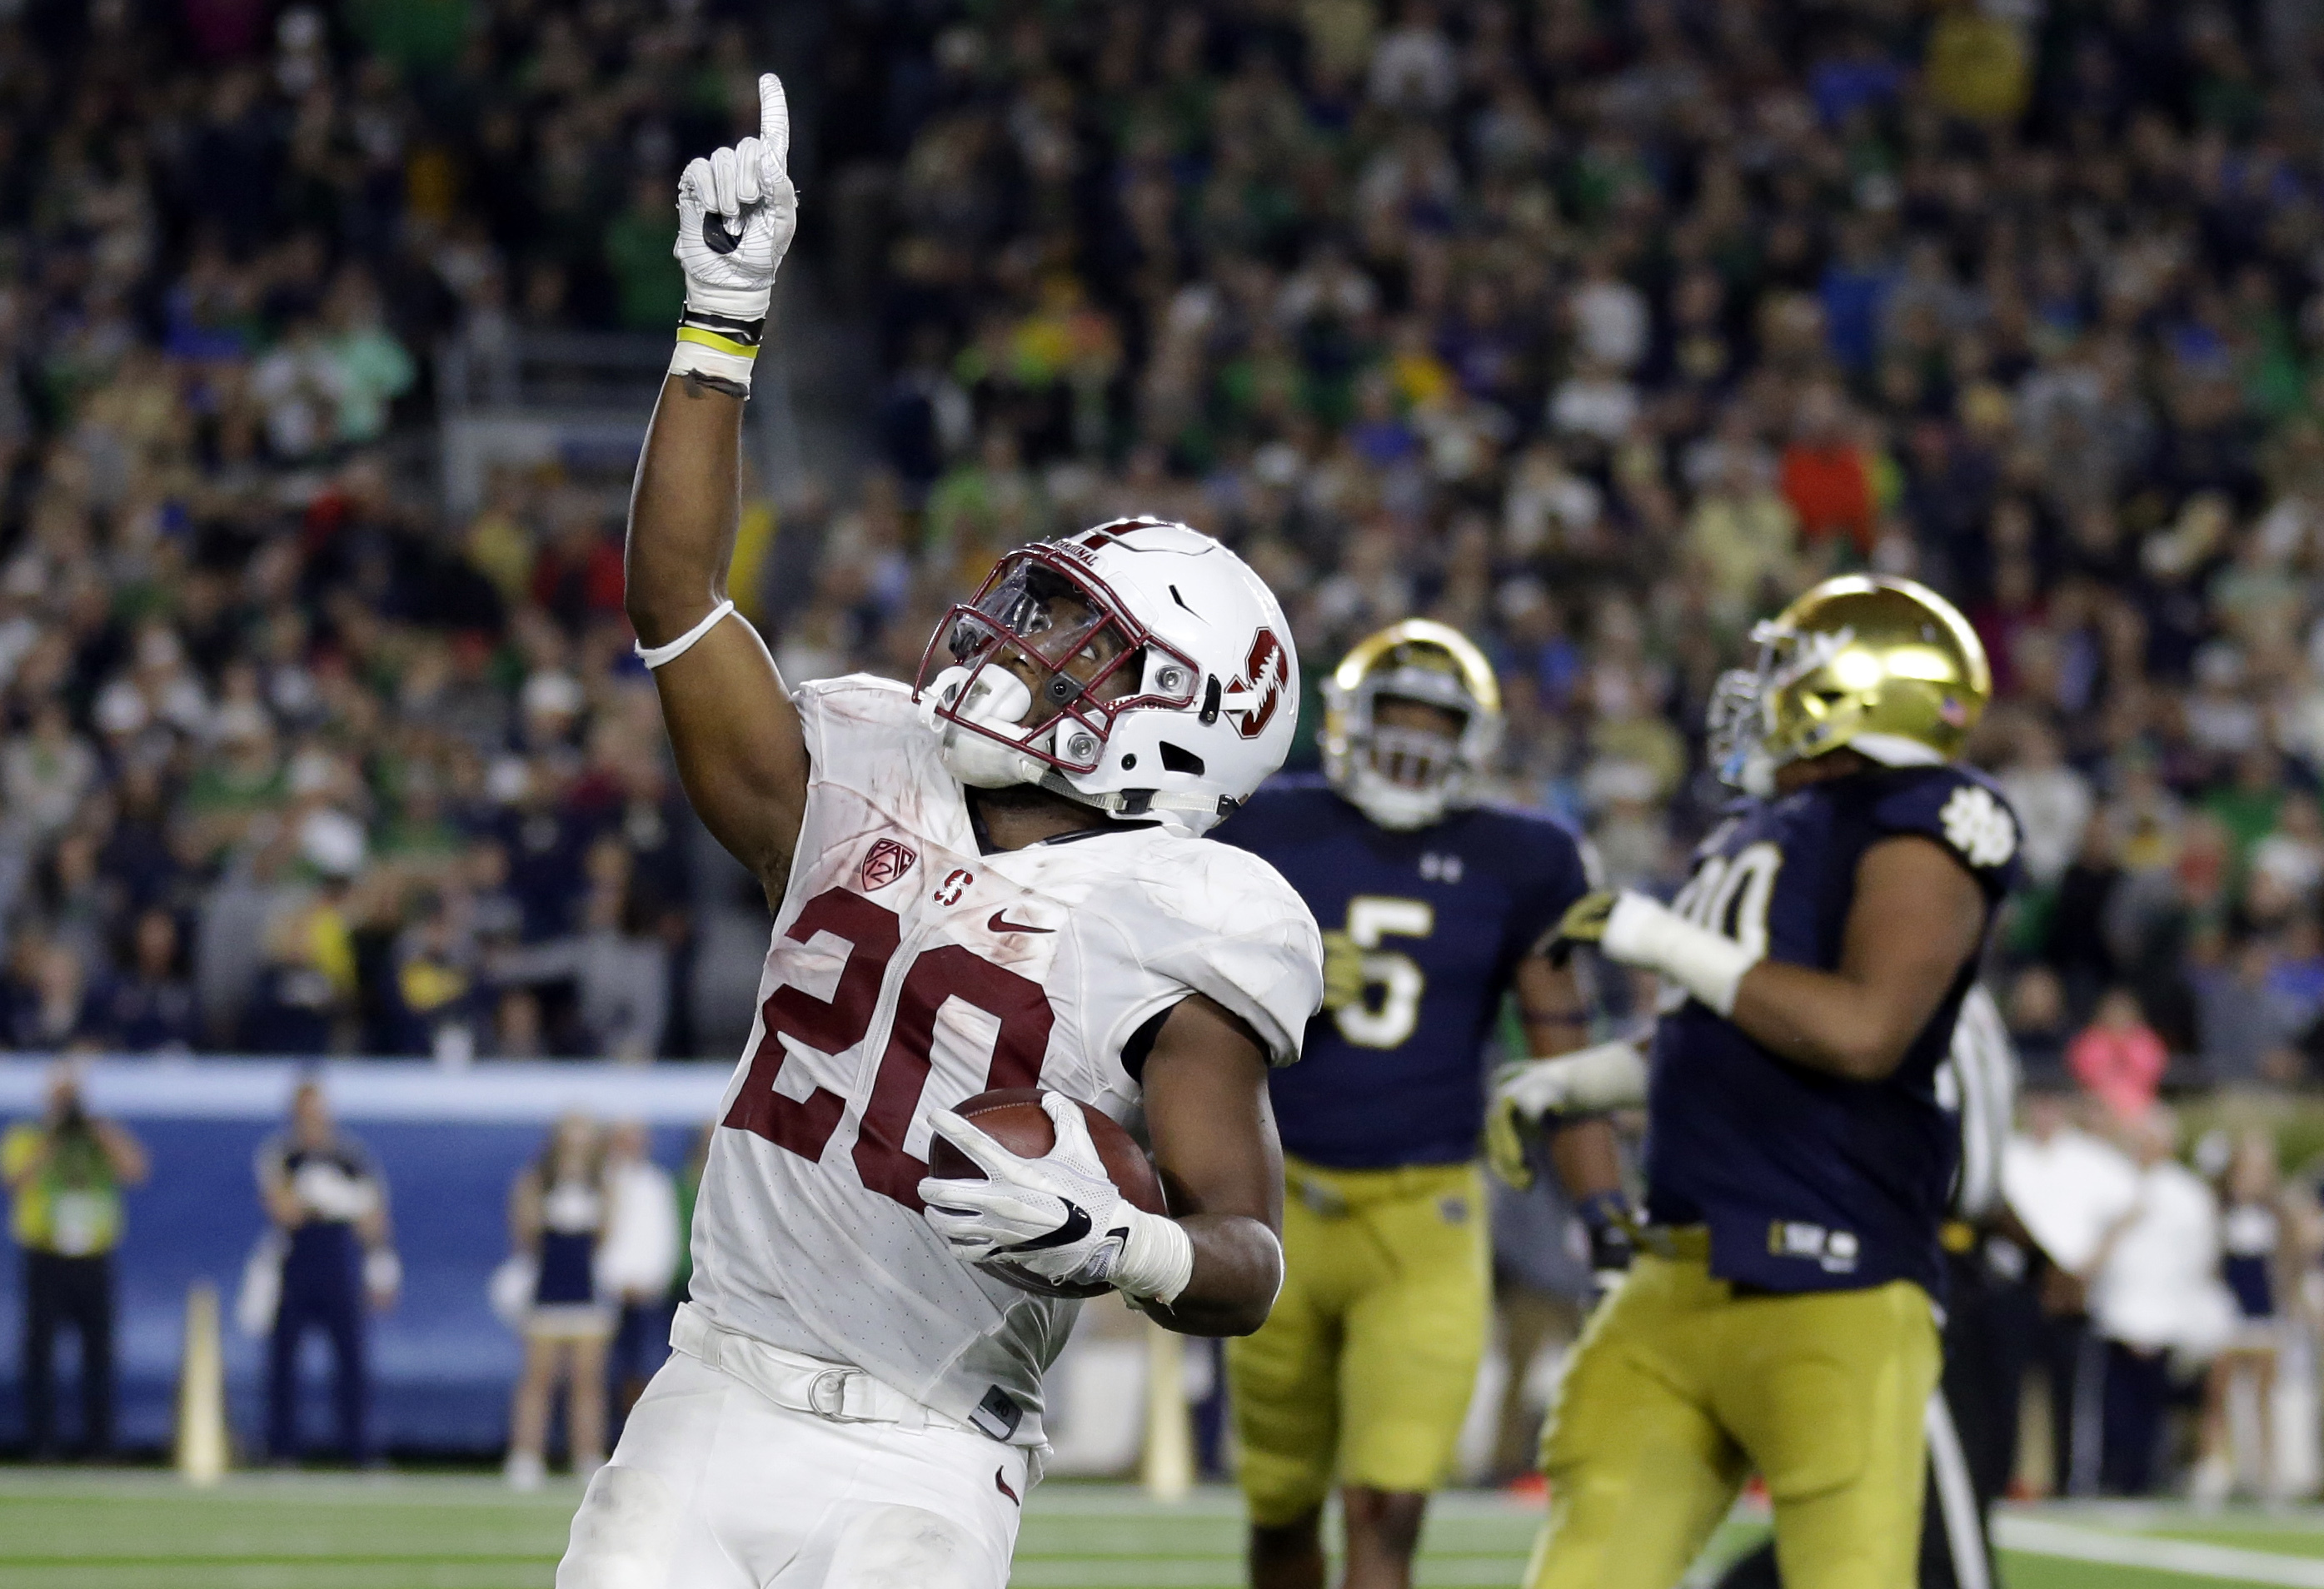 Stanford running back Bryce Love (20) celebrates a 2-point conversion during the second half of an NCAA college football game against Notre Dame in South Bend, Ind., Saturday, Oct. 15, 2016. Stanford defeated Notre Dame 17-10. (AP Photo/Michael Conroy)